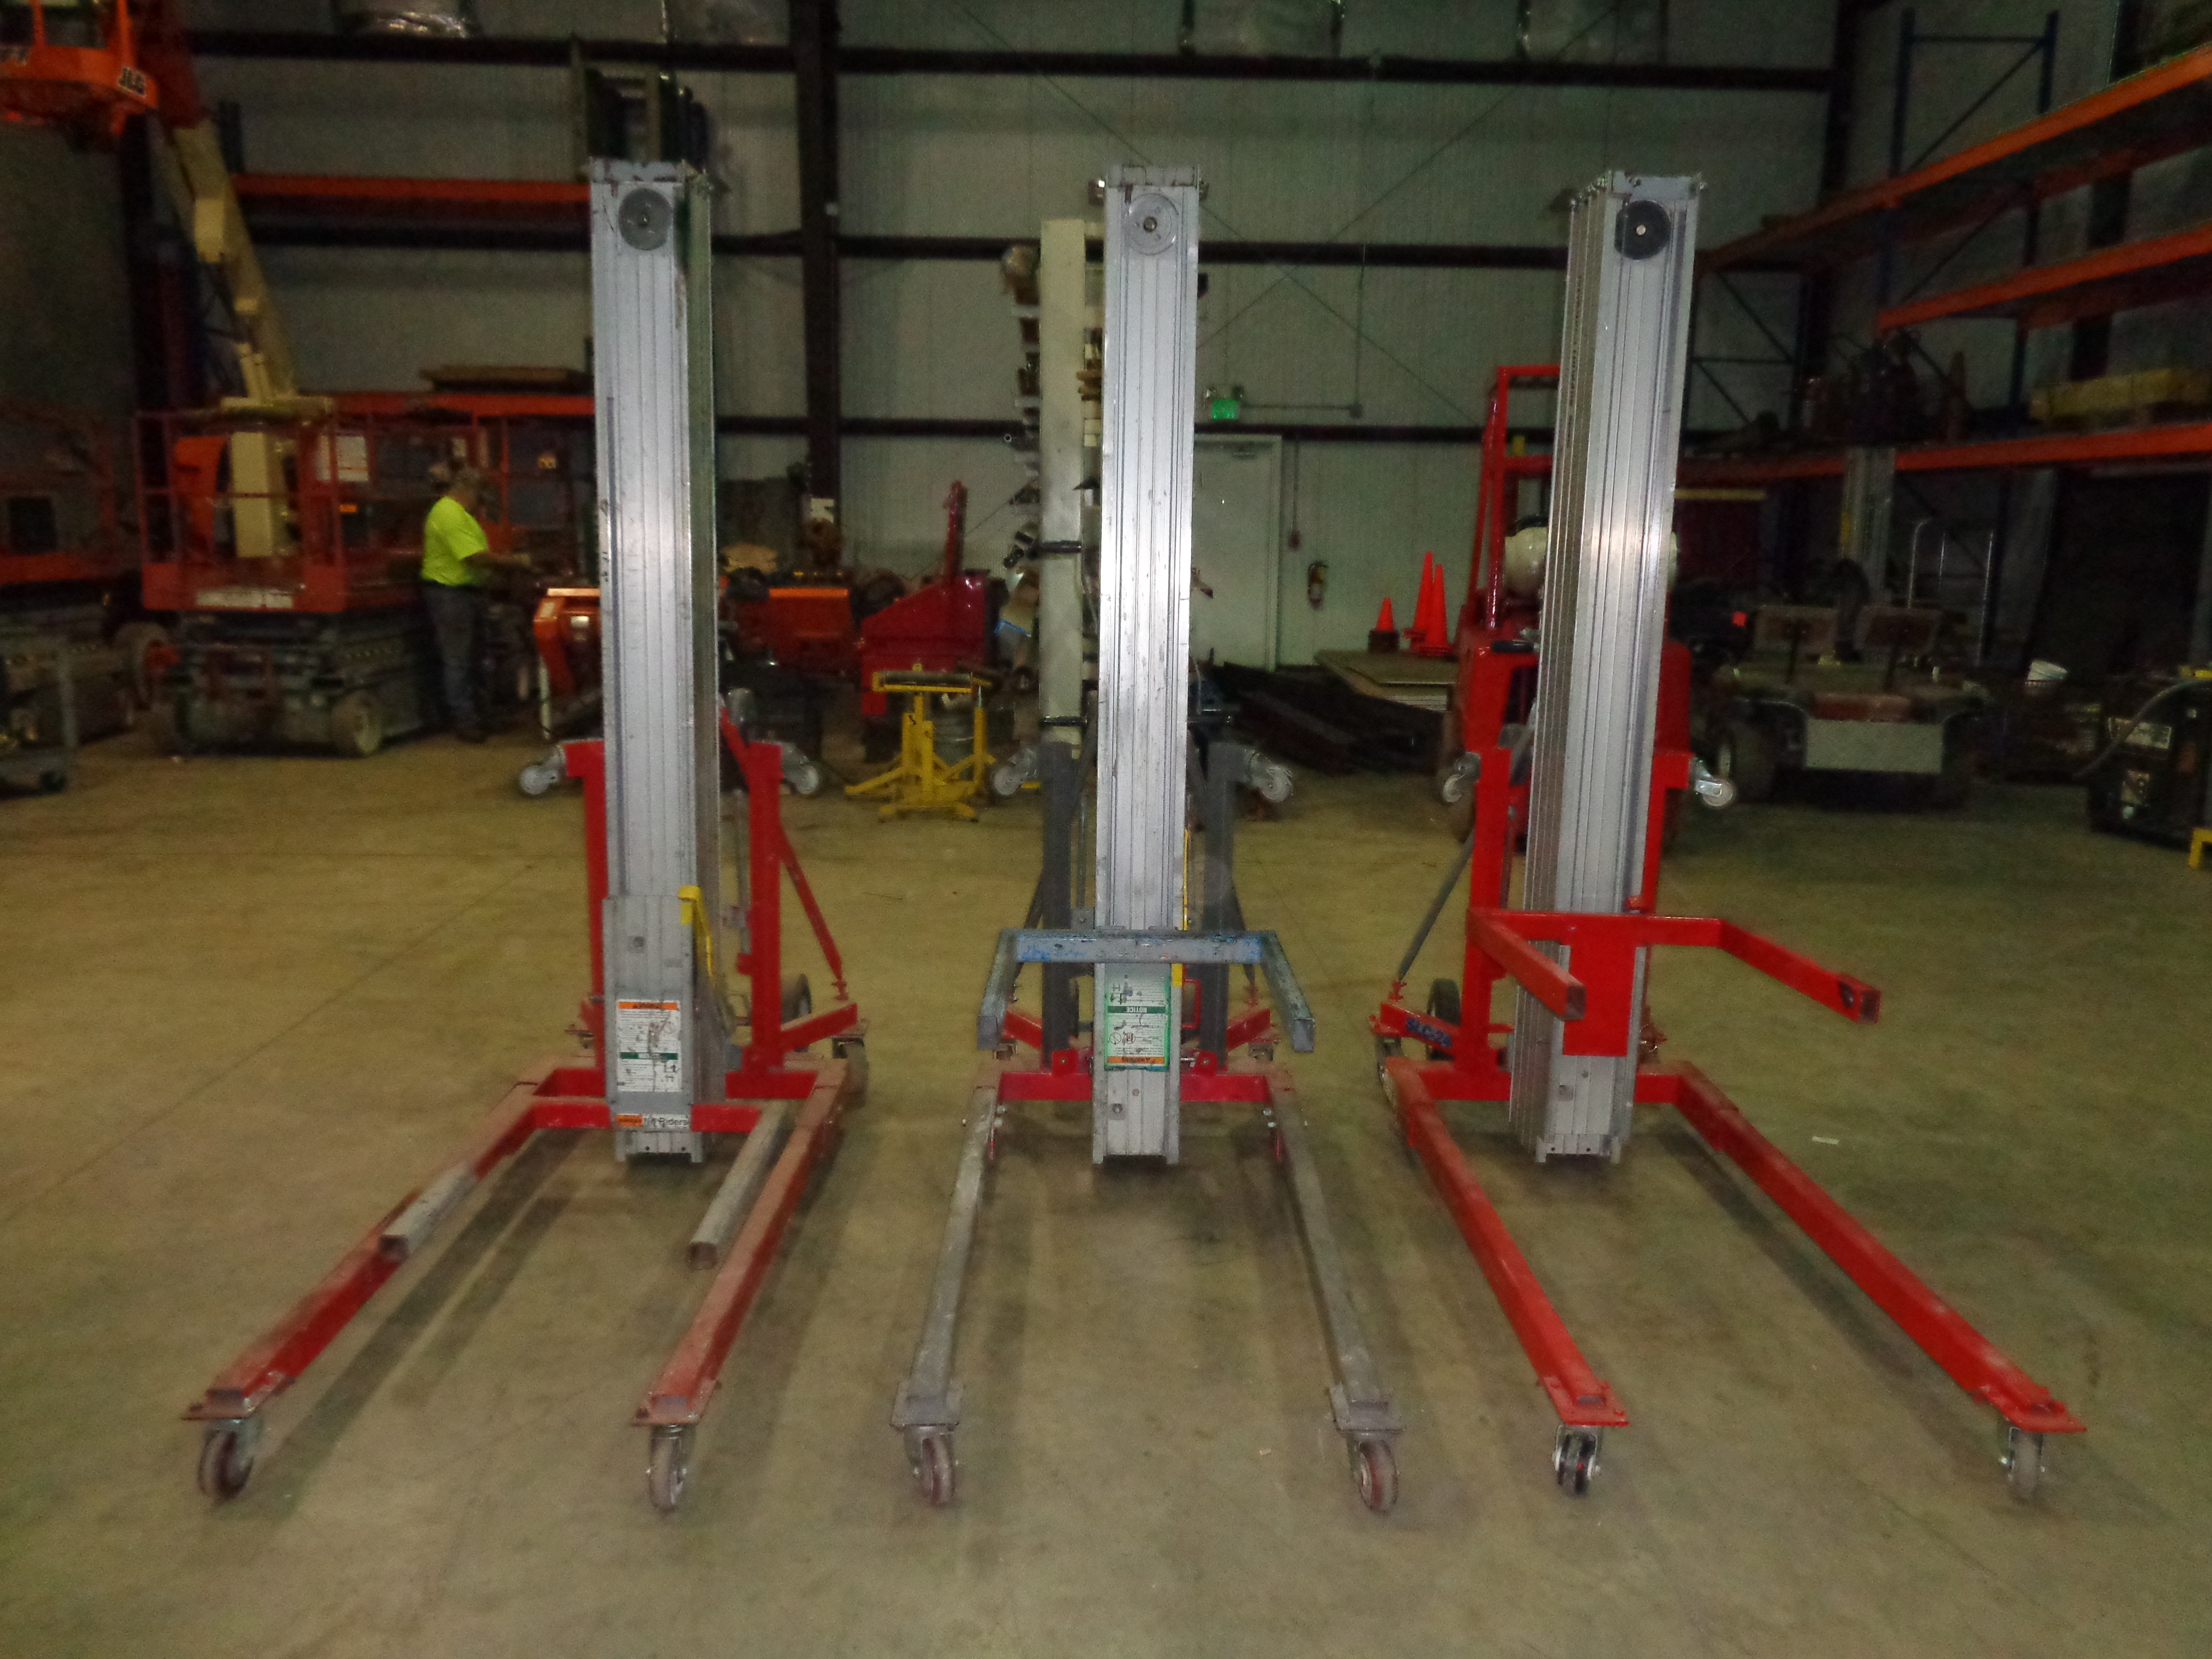 Lot of 3 Genie SLC-24 Duct Lifts - Image 2 of 4